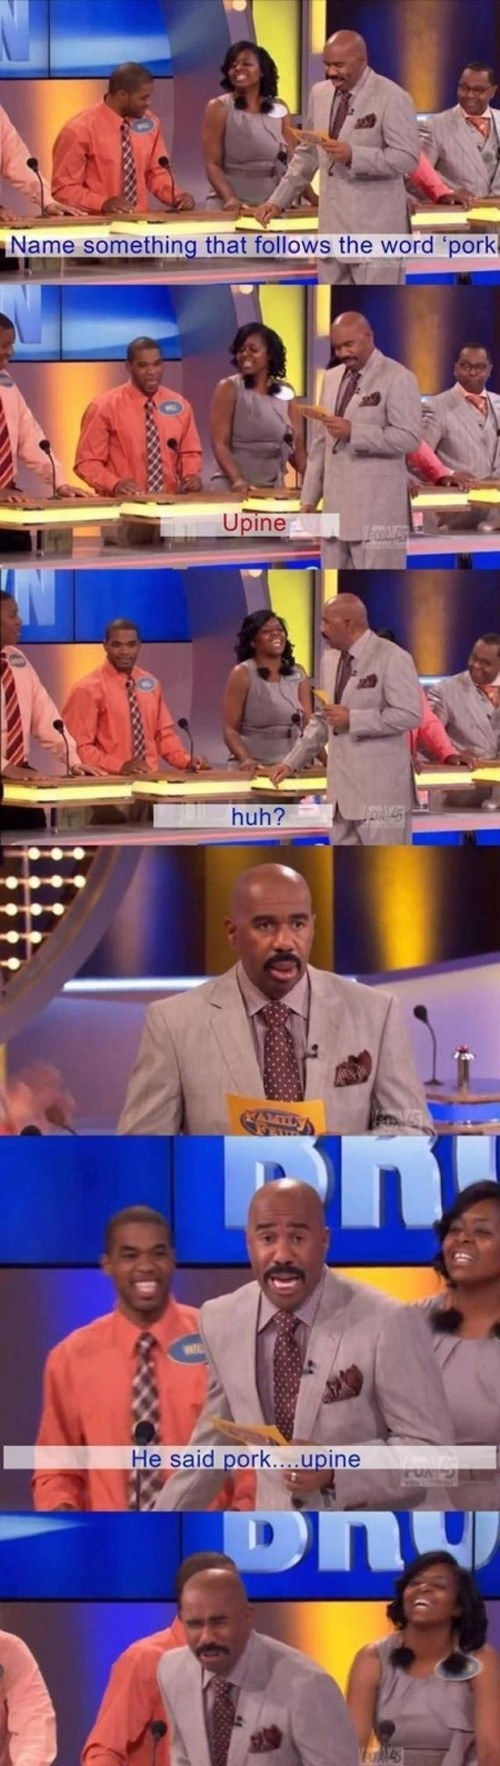 https://i1.wp.com/www.blogcdn.com/www.mandatory.com/media/2013/06/steve-harvey-family-feud-1.jpg